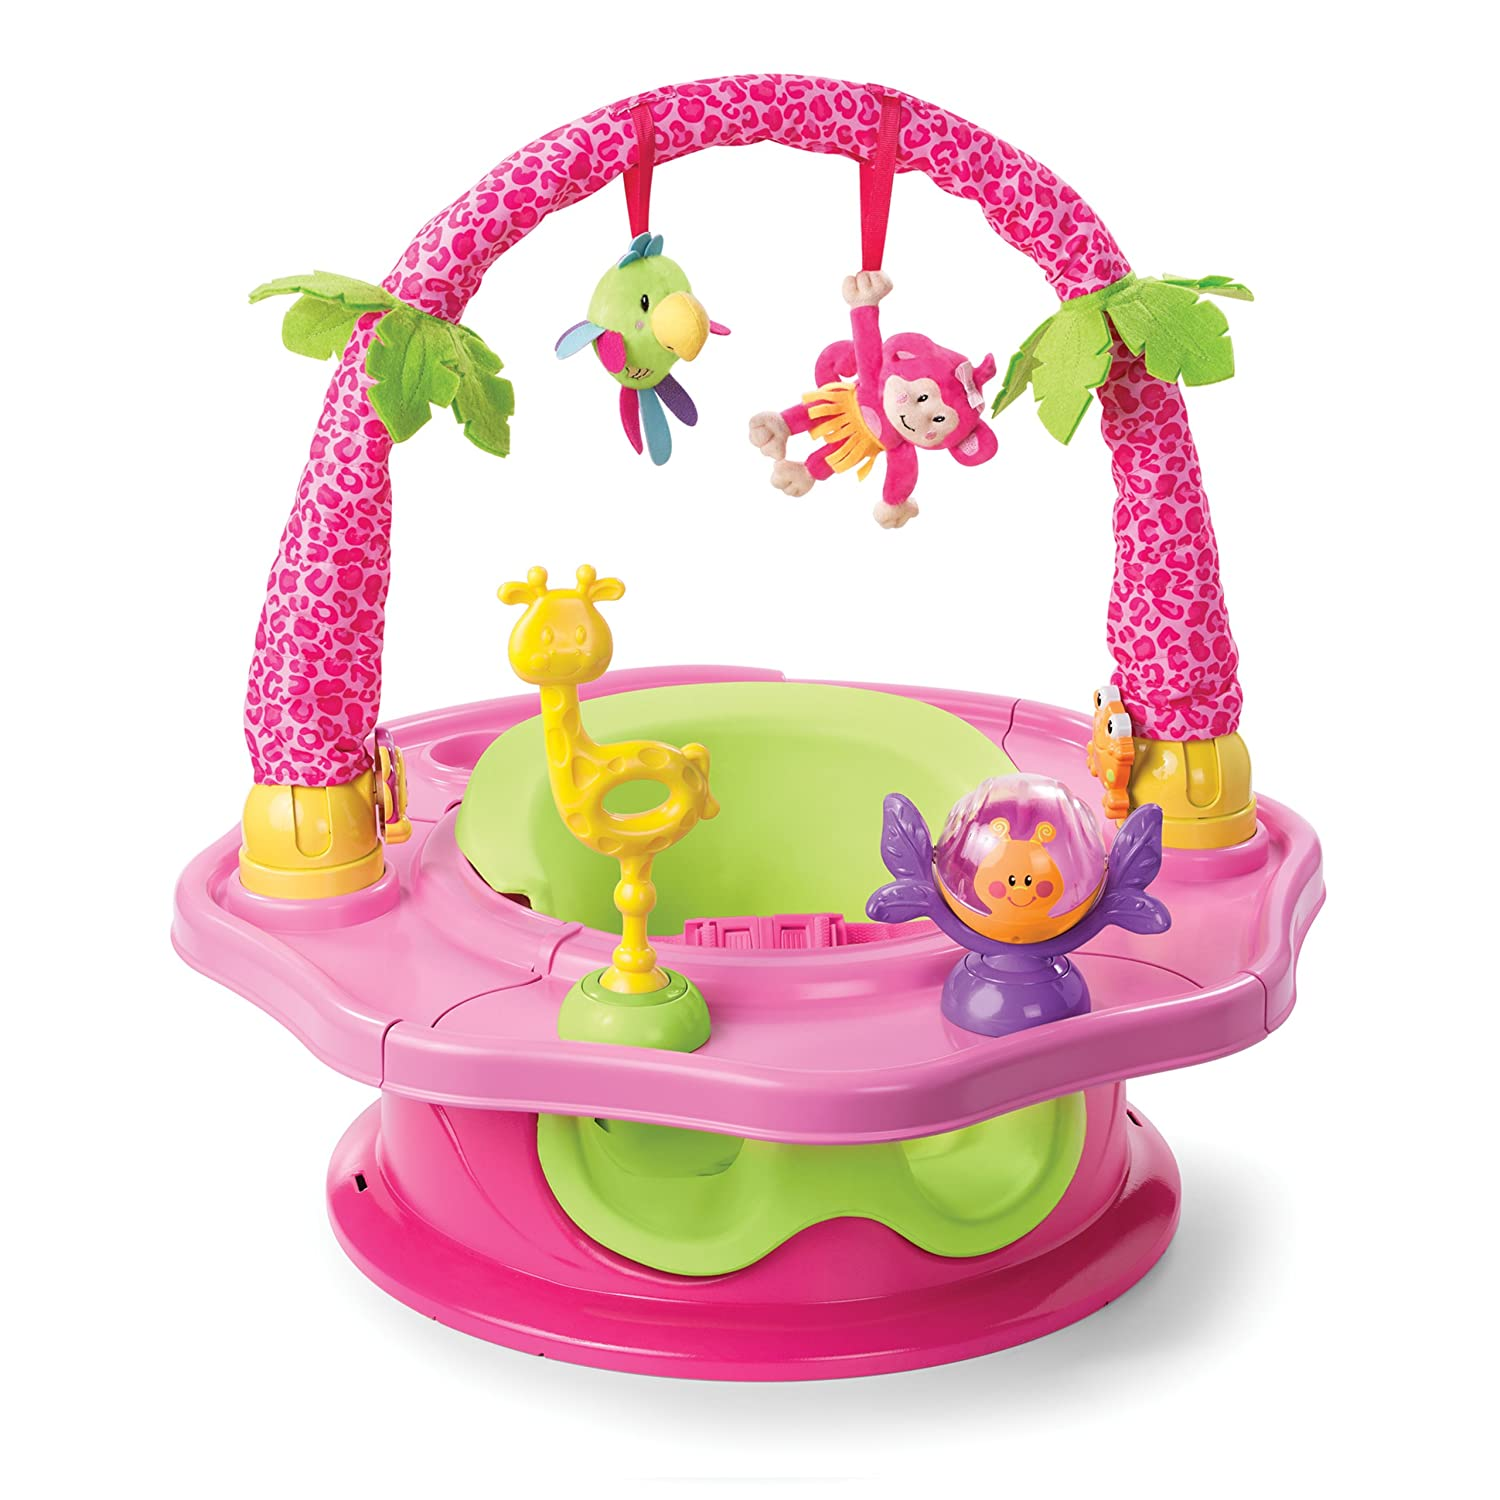 Summer Infant 3-Stage SuperSeat Deluxe Giggles Island: Positioner, Activity Seat, and Booster, Girl SUMKJ 13305